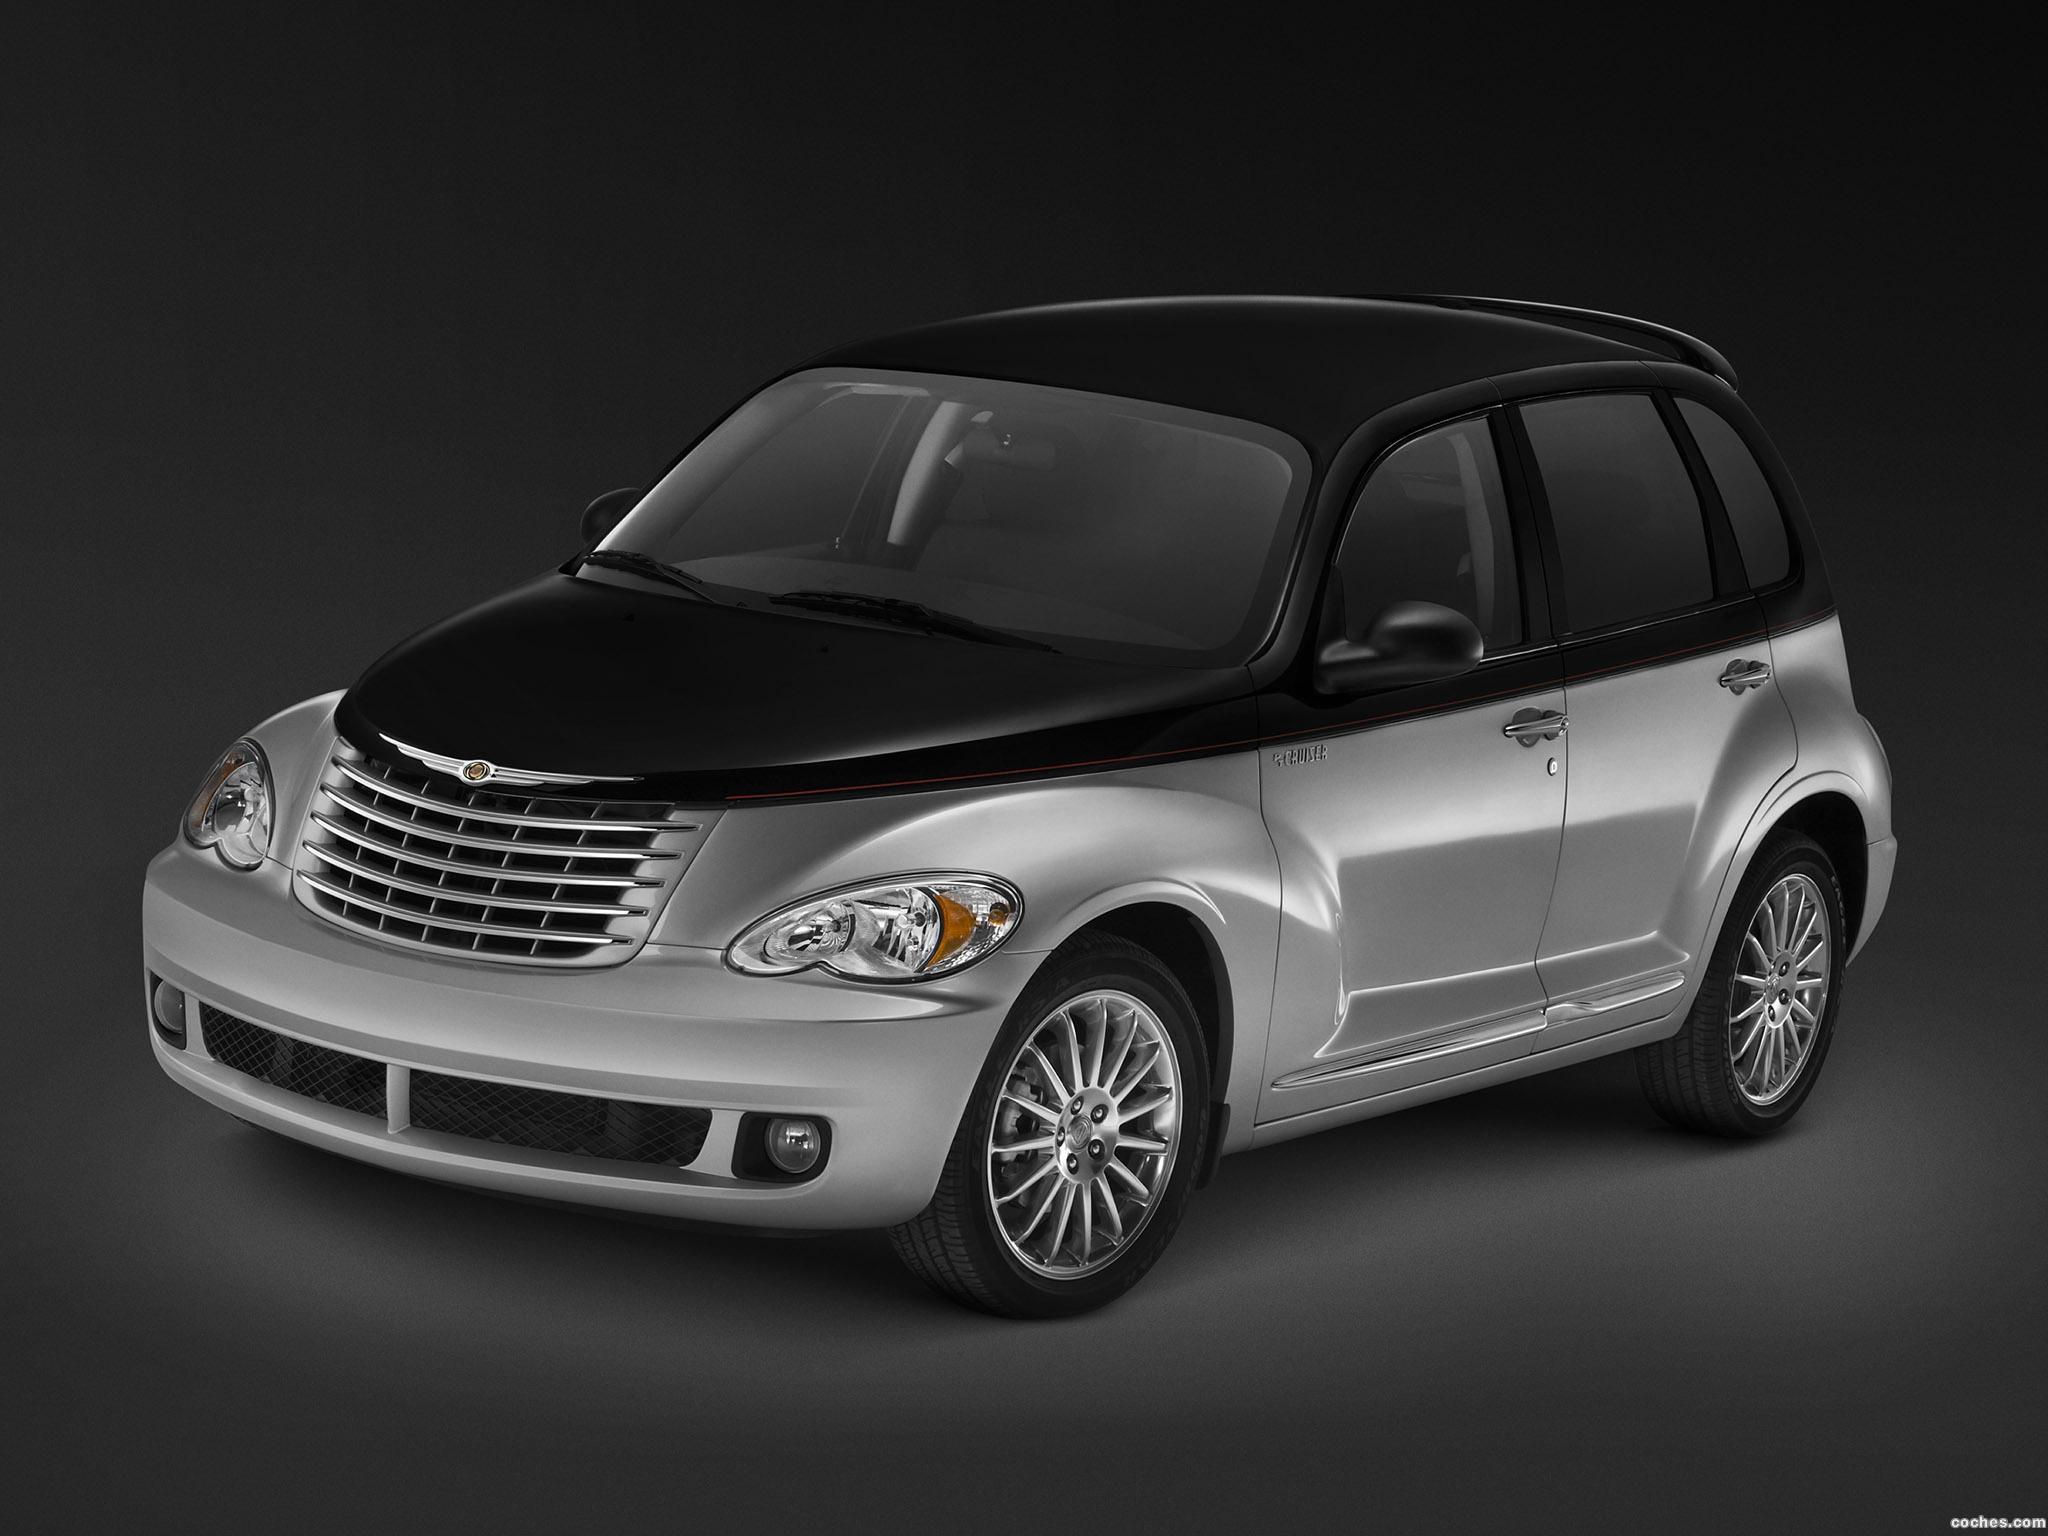 Foto 0 de Chrysler PT Cruiser Couture Edition 2010